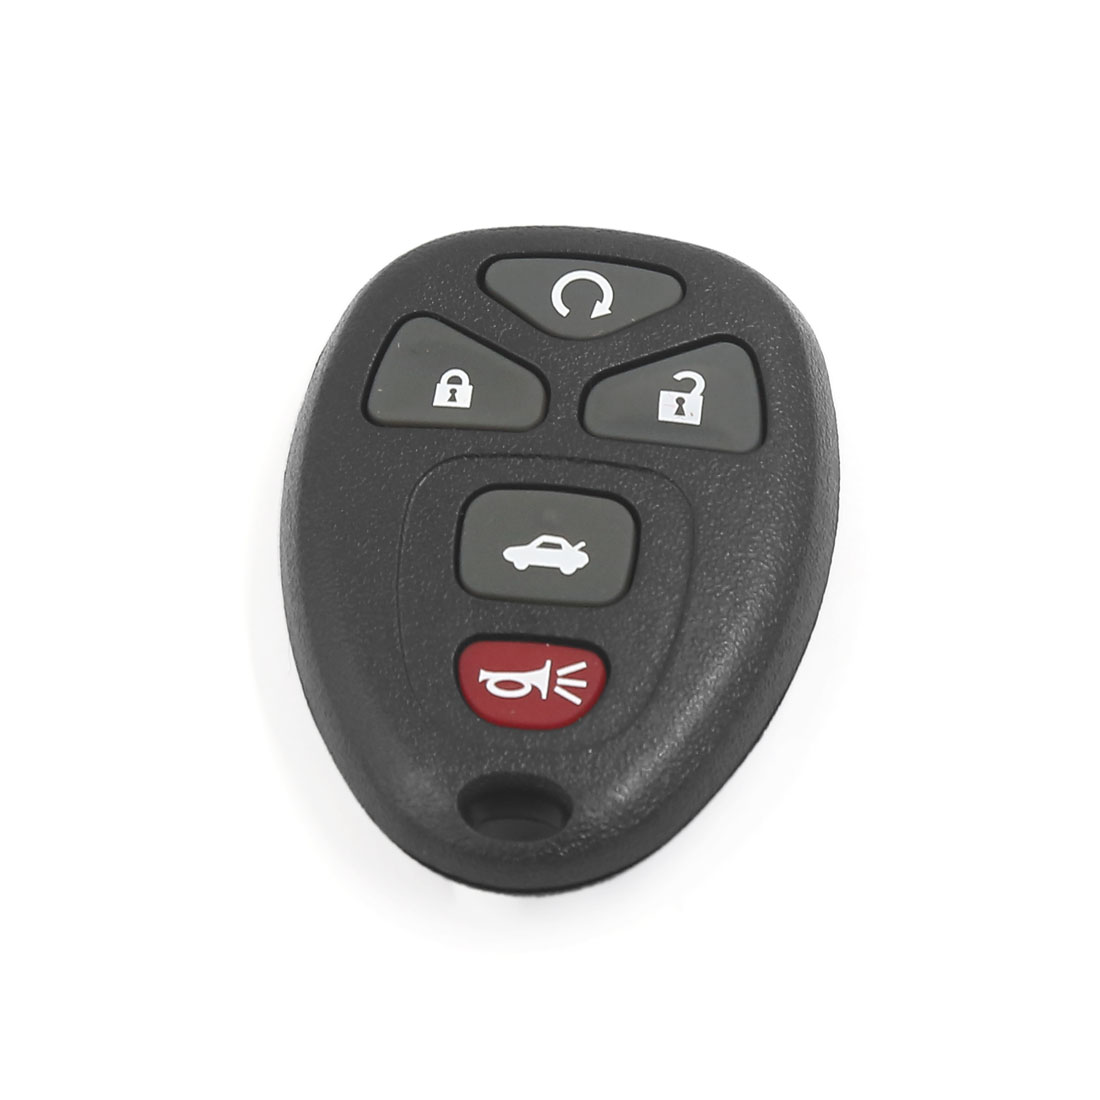 New Car Replacement Keyless Entry Remote Key Fob Clicker Transmitter for Chevrolet Buick Saturn 22733524 KOBGT04A 5 button